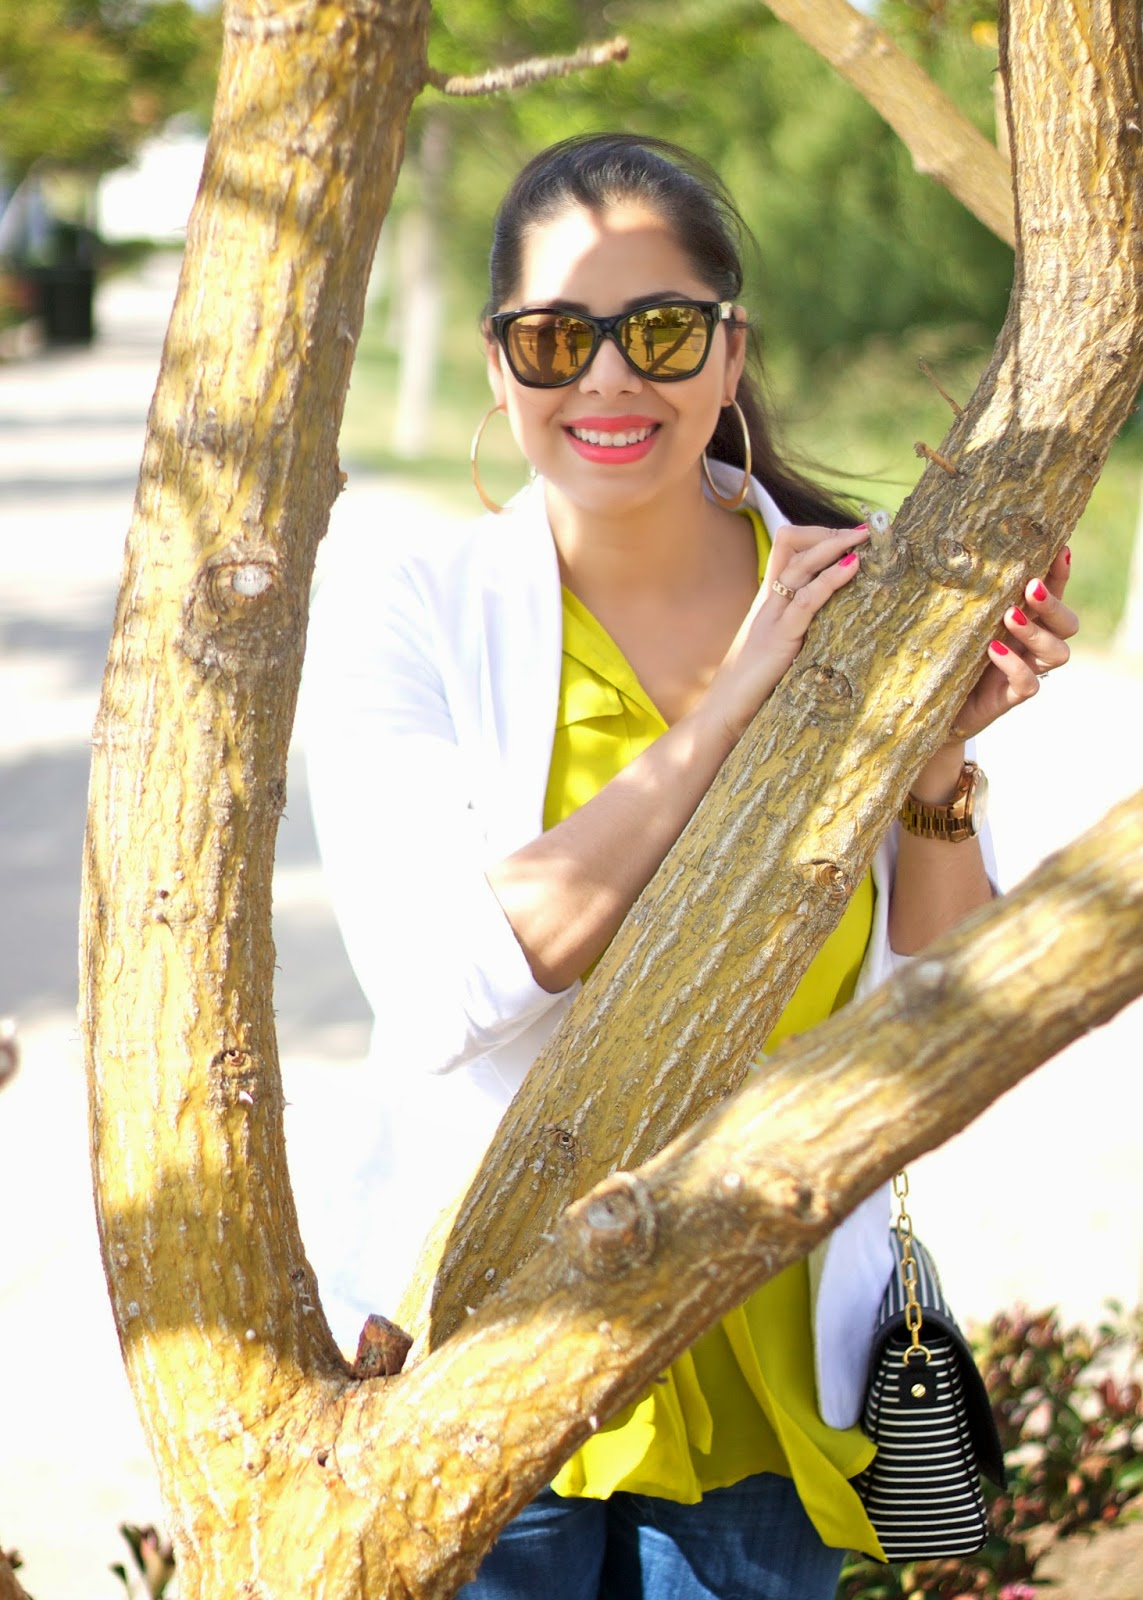 Irridescent Sunglasses, Irridescent Sunglasses at Choies, Comfy and Chic outfit, Comfortable chic outfit, comfy stylish outfit, comfort and style